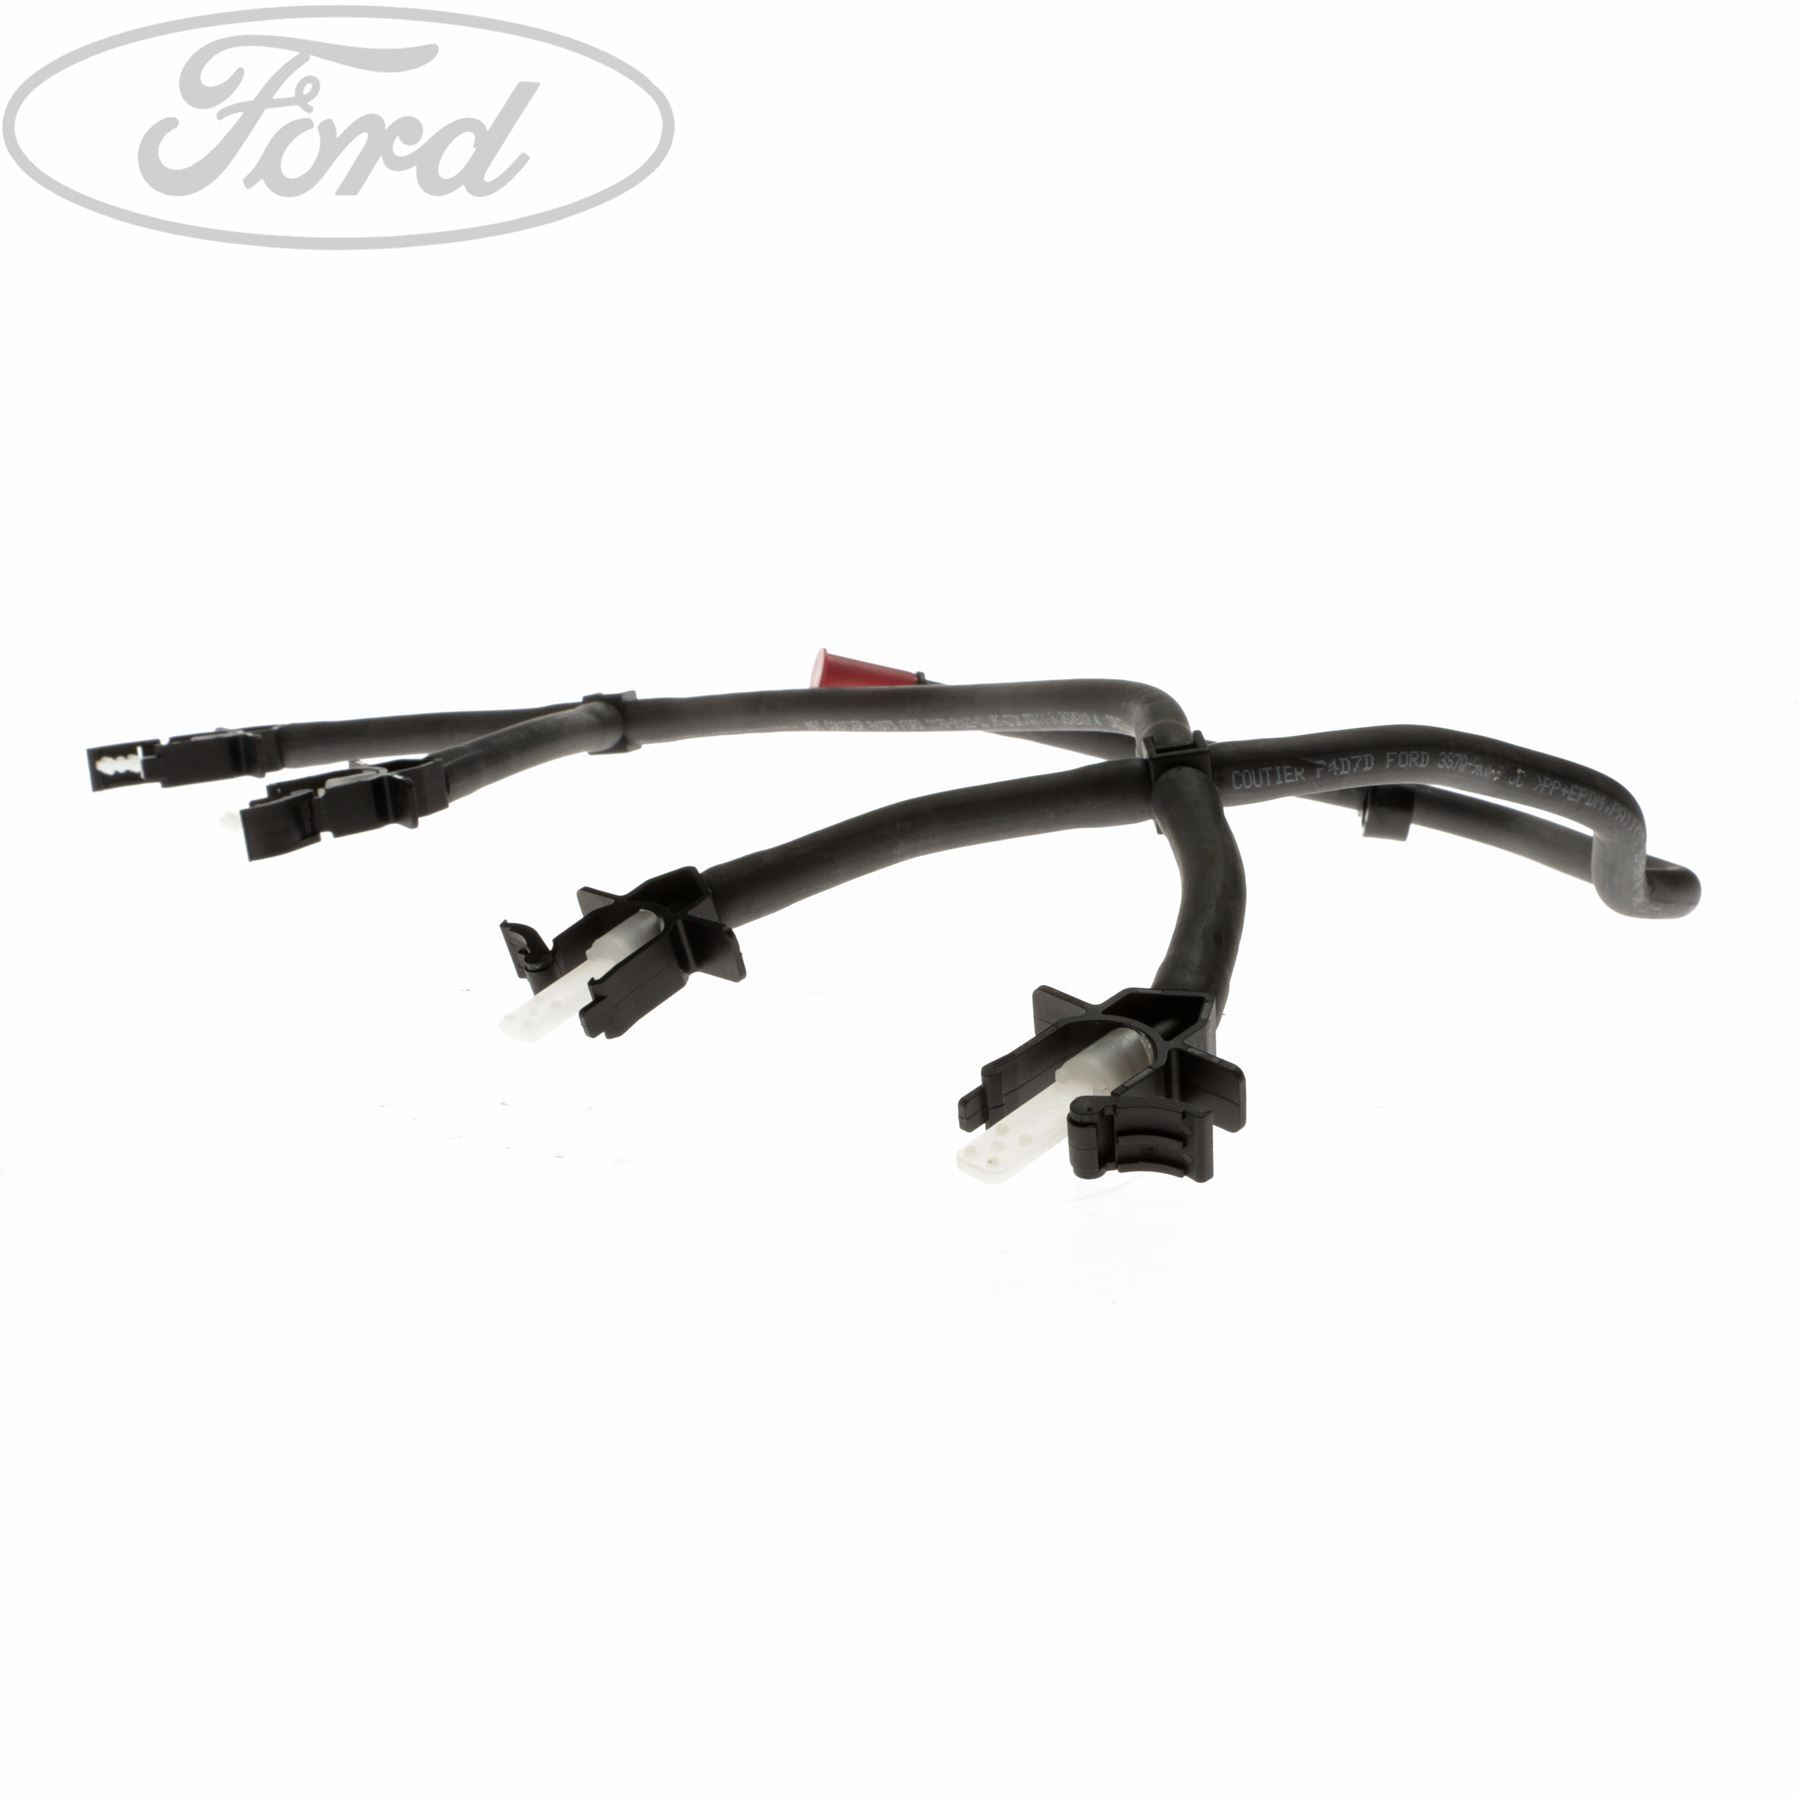 Genuine Ford Fuel Injector Pipe Repair Tube